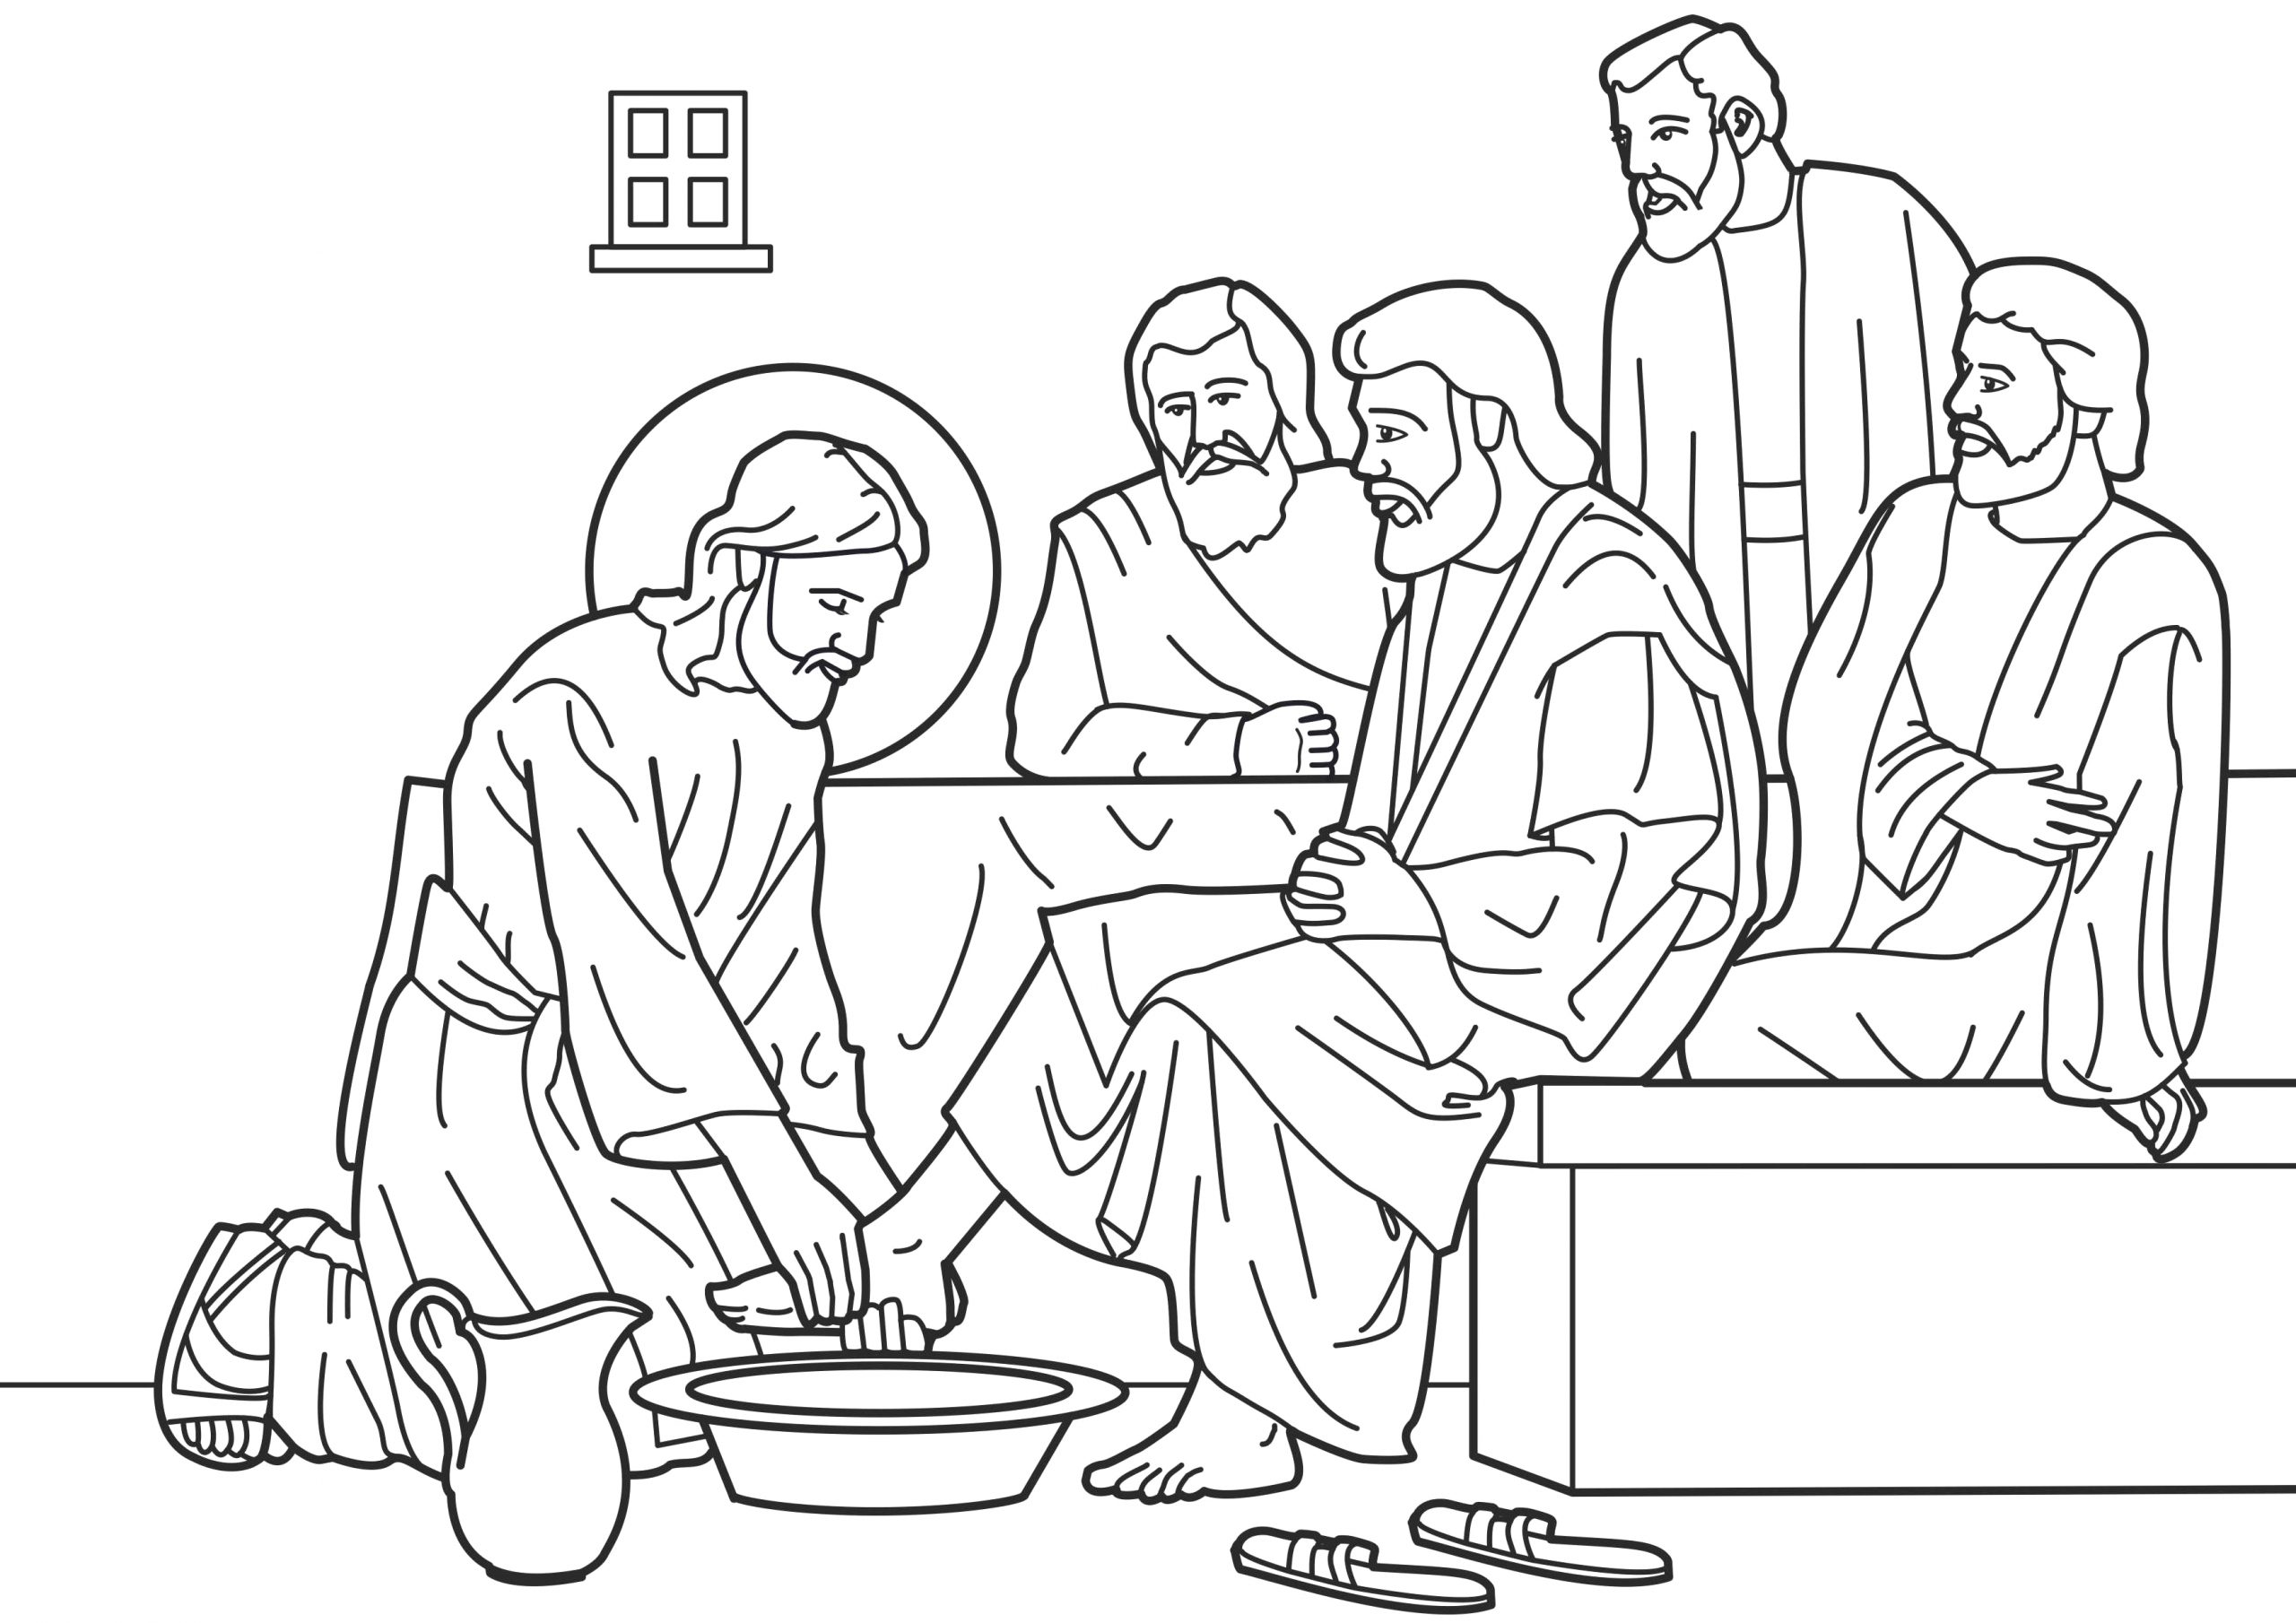 Coloring Pages Of Jesus Washing His Disciples Feet Image Coloring Jesus Washes His Disciples Feet صورة